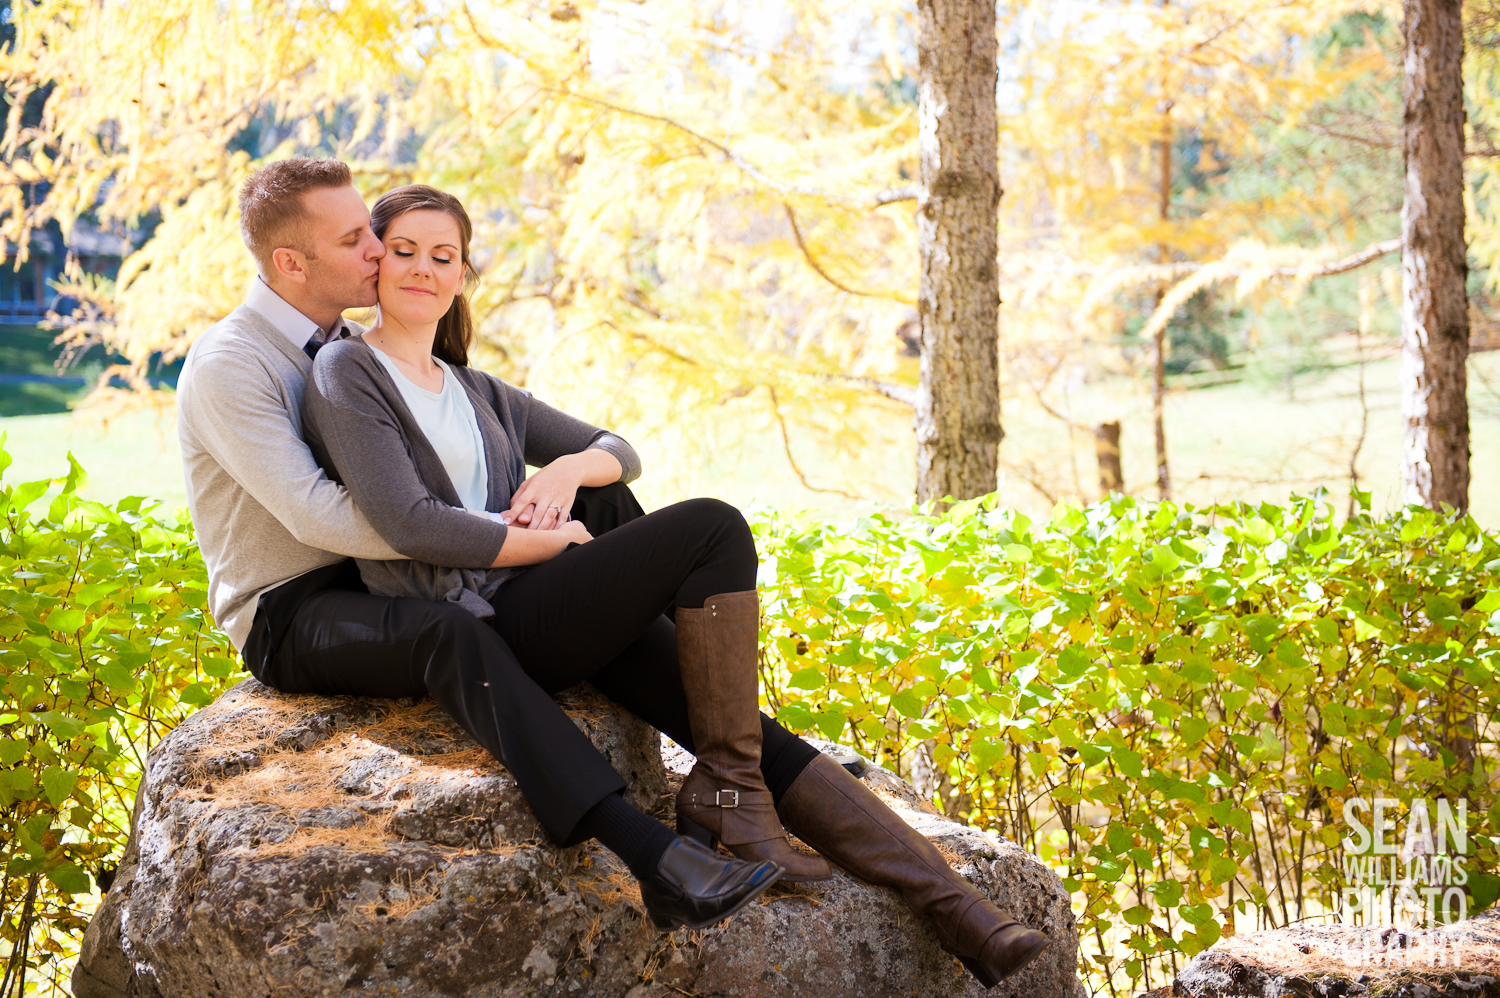 engagement-love-lifestyle-edmonton-photgrapher-sean-williams-5.jpg